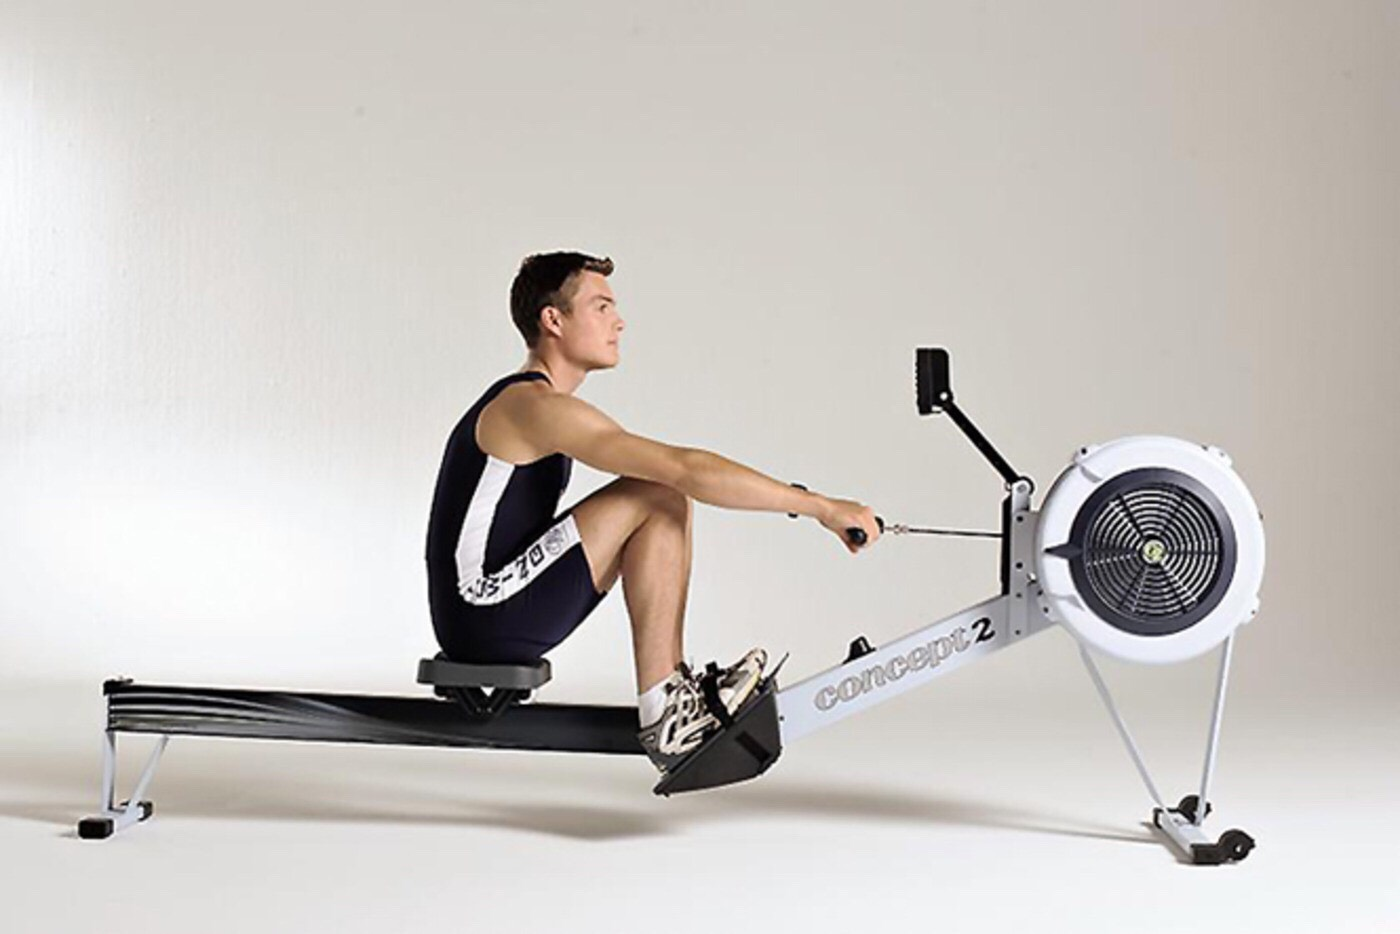 If you have time, go to the rowing machine and do 500-1000m of rowing